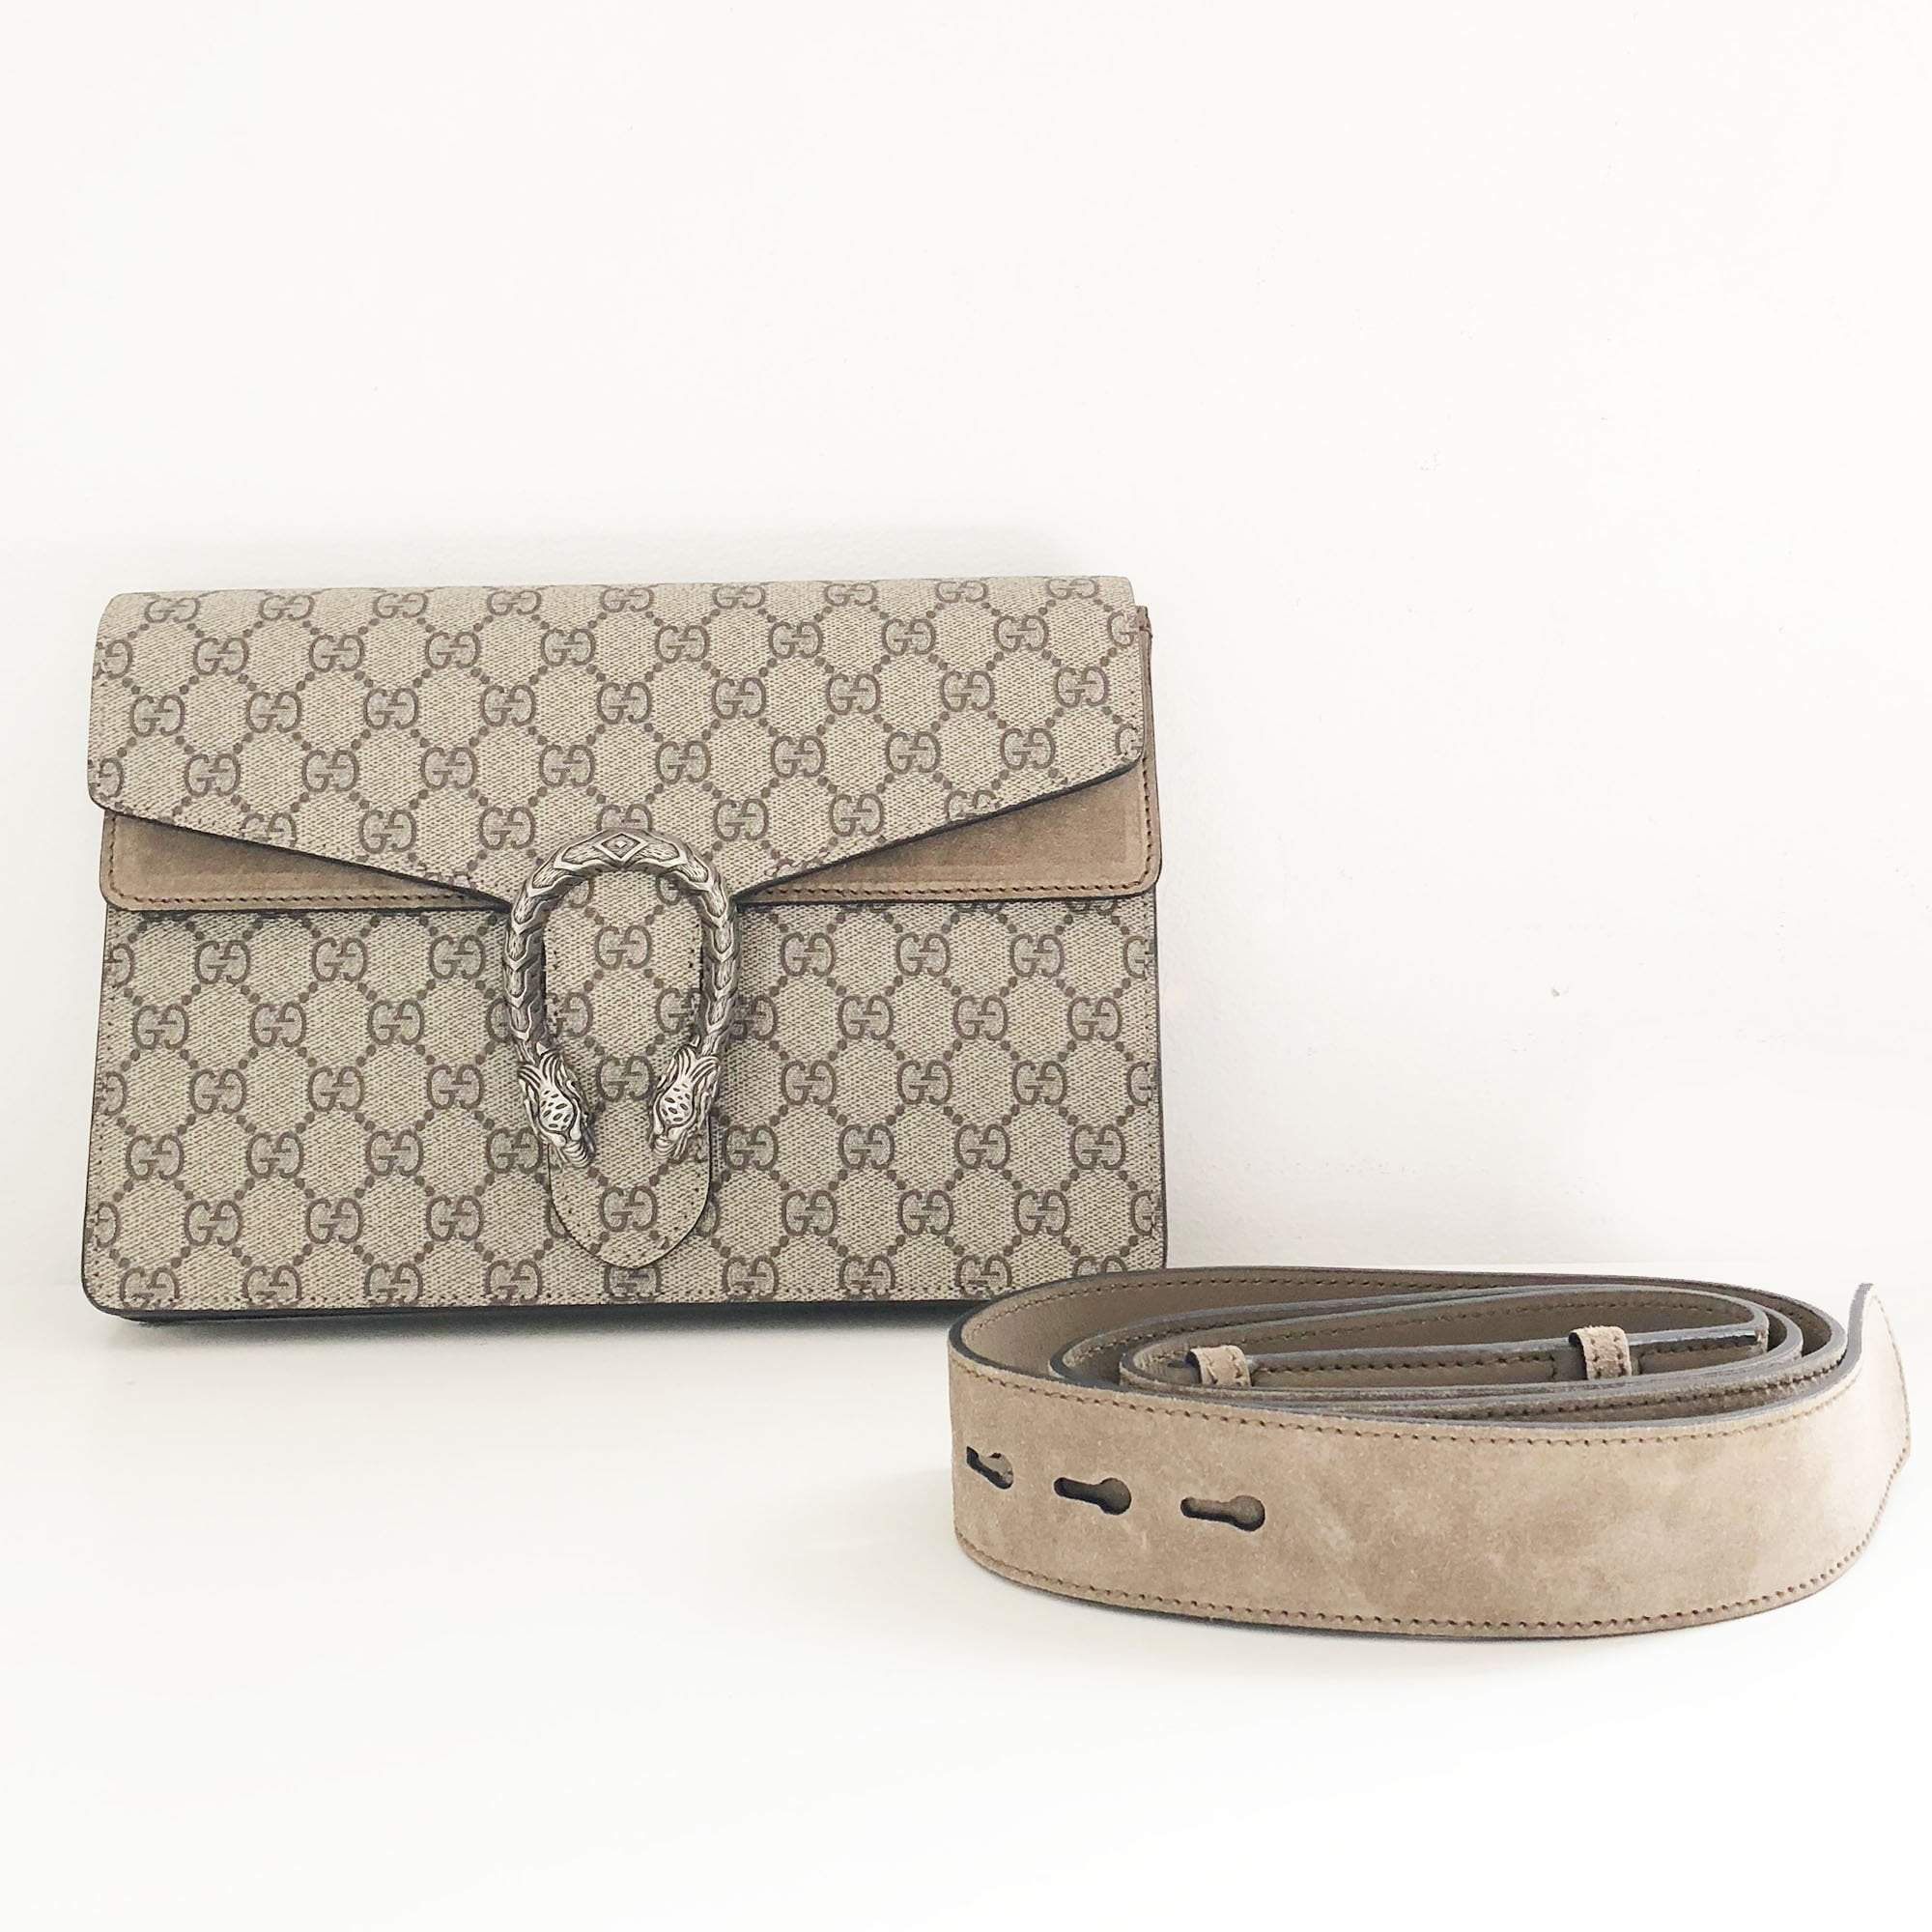 Gucci Dionysus Gg Supreme Canvas Belt Bag